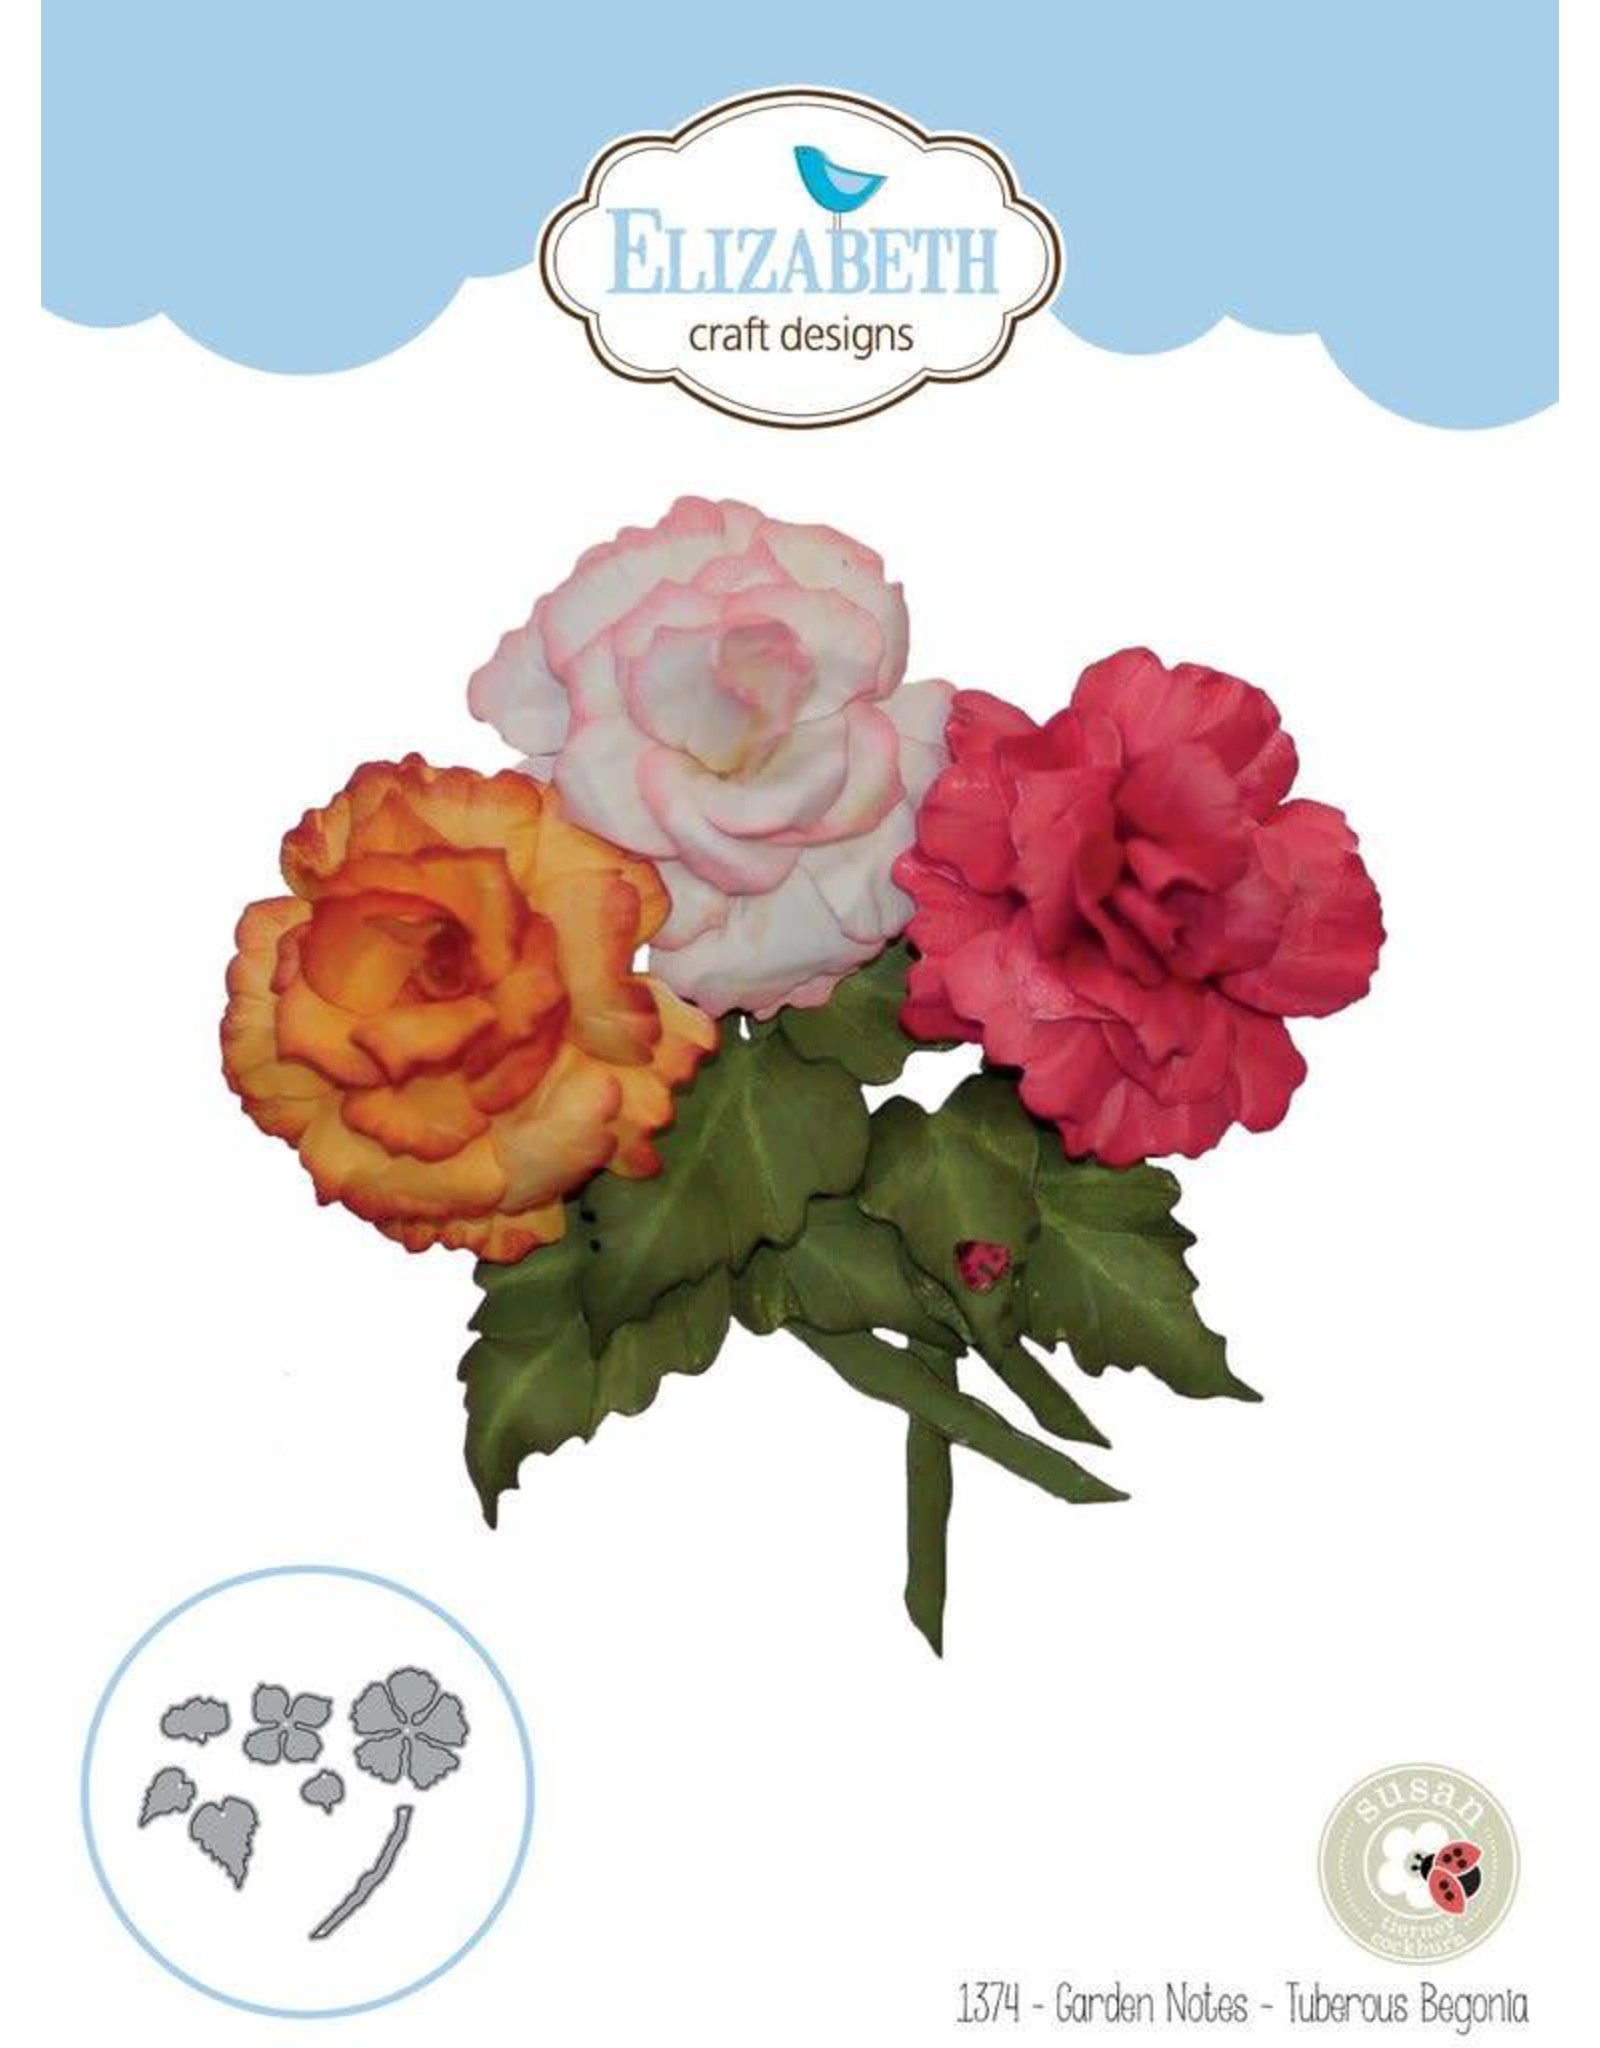 Elizabeth Craft Designs Elizabeth Craft Designs dies Garden Notes - Tuberous Begonia 1374